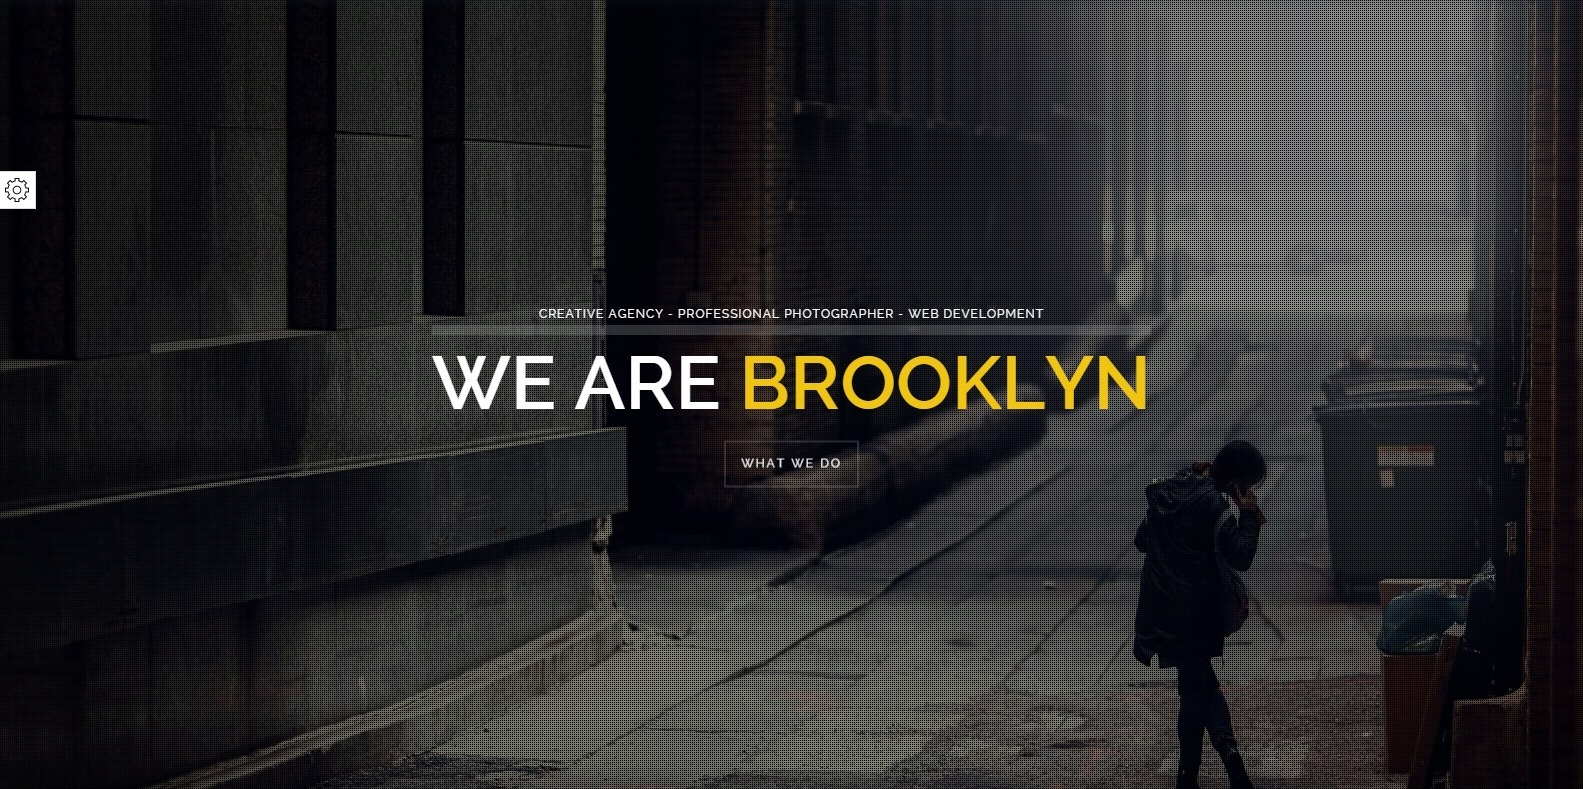 brooklyn-photography-website-template